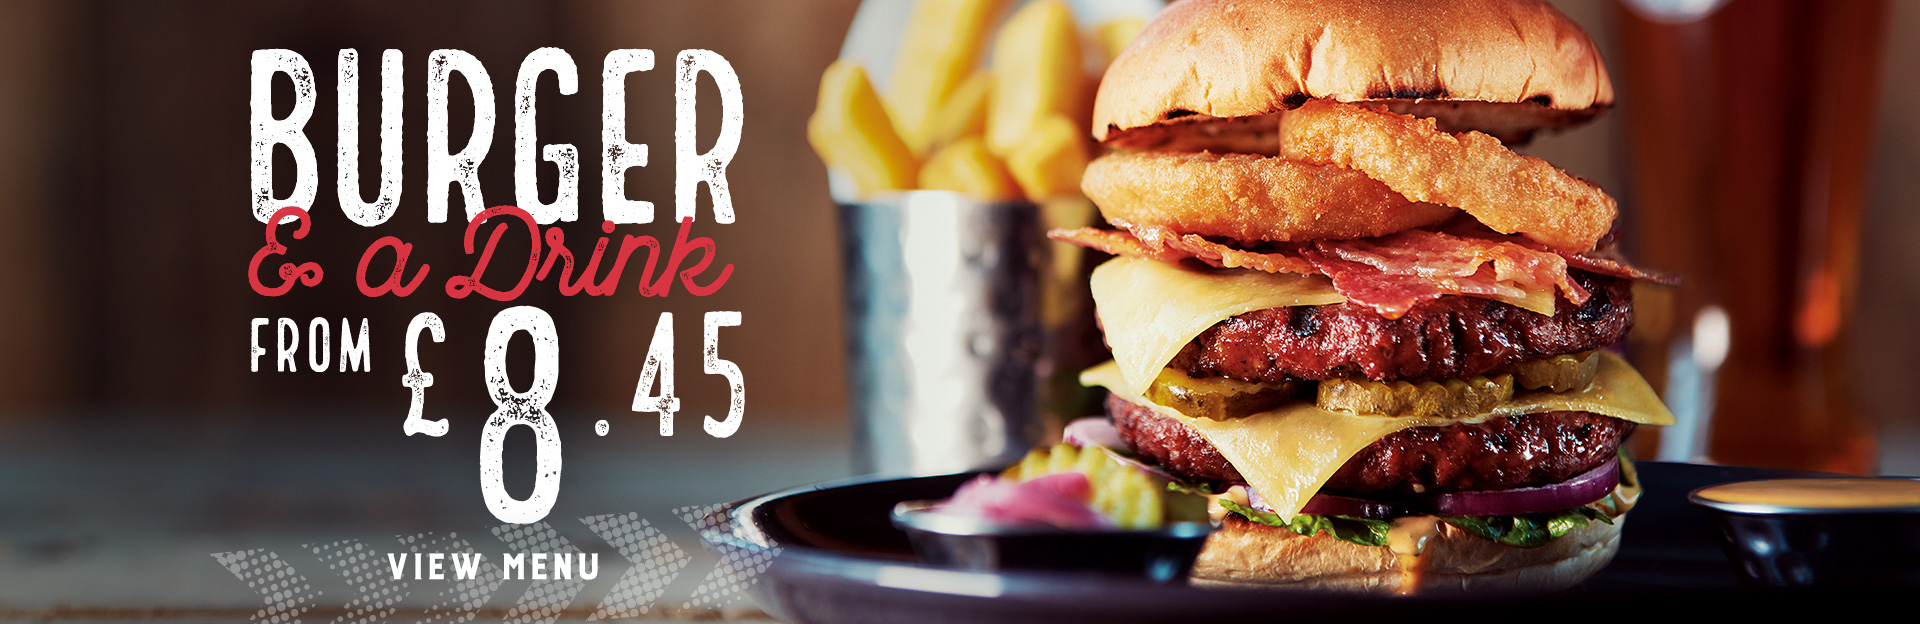 Burger and drink offer